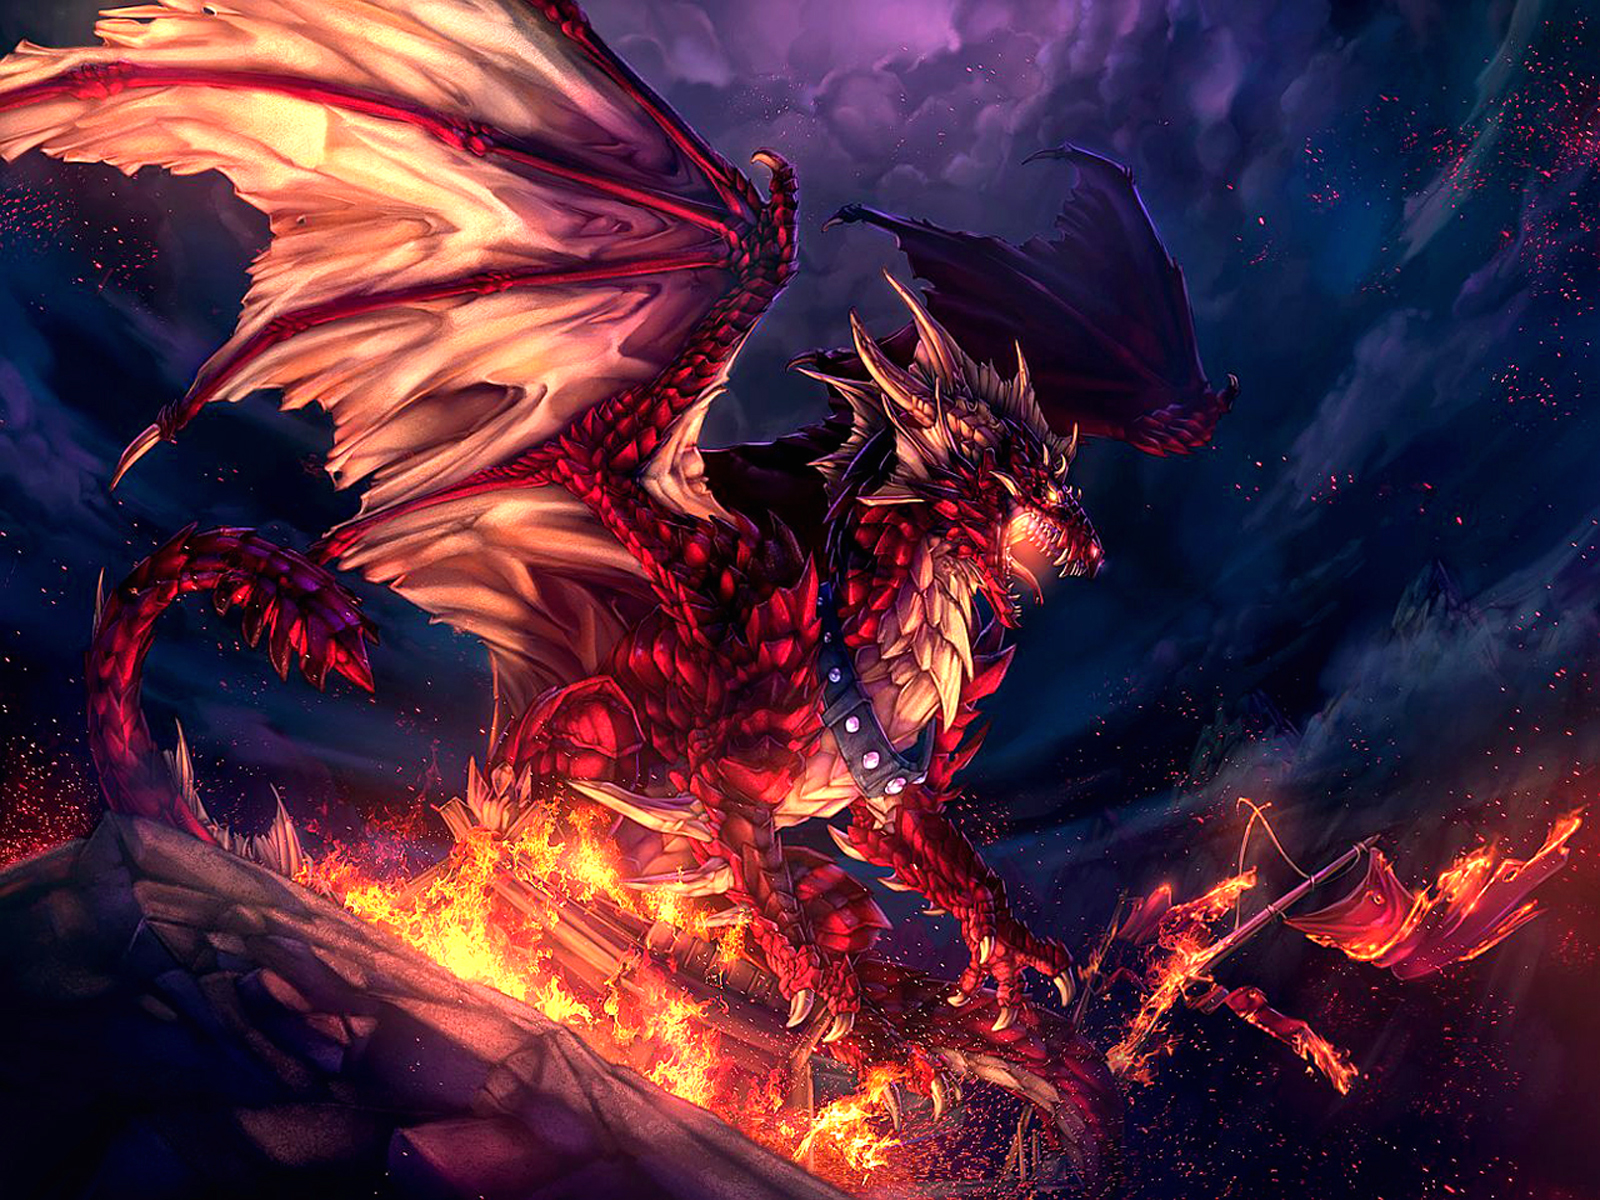 Cool Dragons 43 Wallpaper Background Hd With Resolutions 16001200 1600x1200